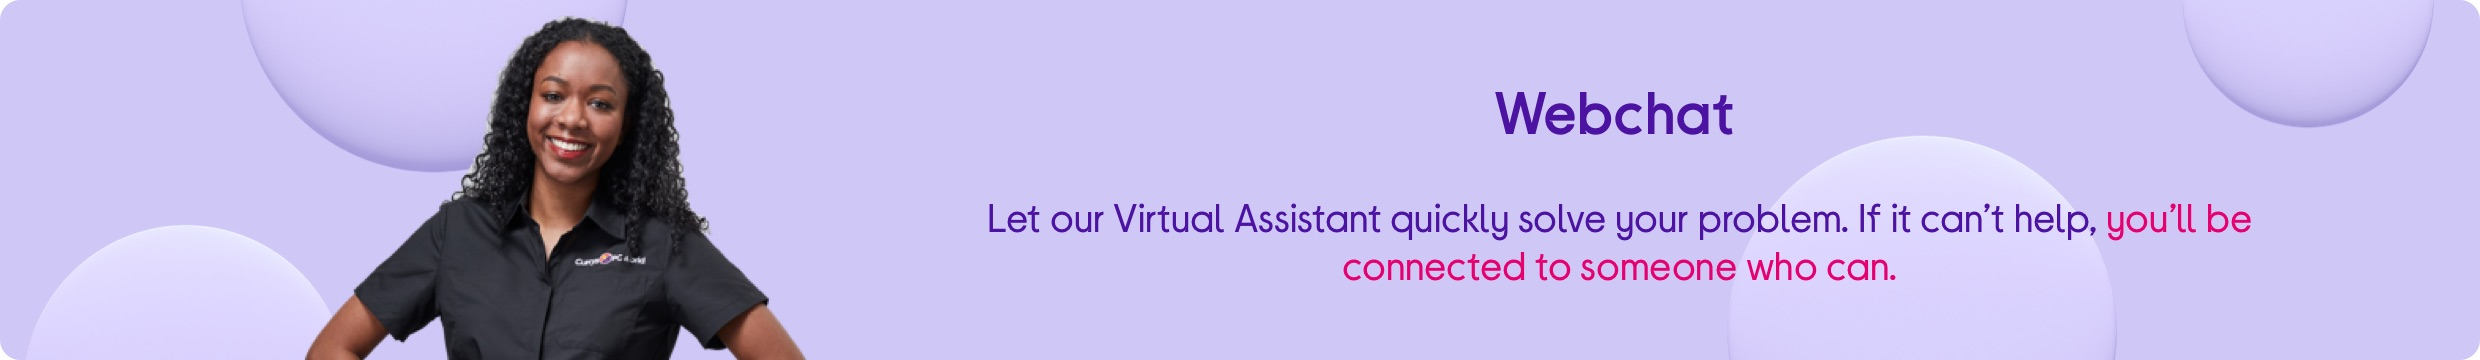 Webchat. Let our virtual assistant quickly solve your problem. If it can't help, you'll be connected to someone who can.